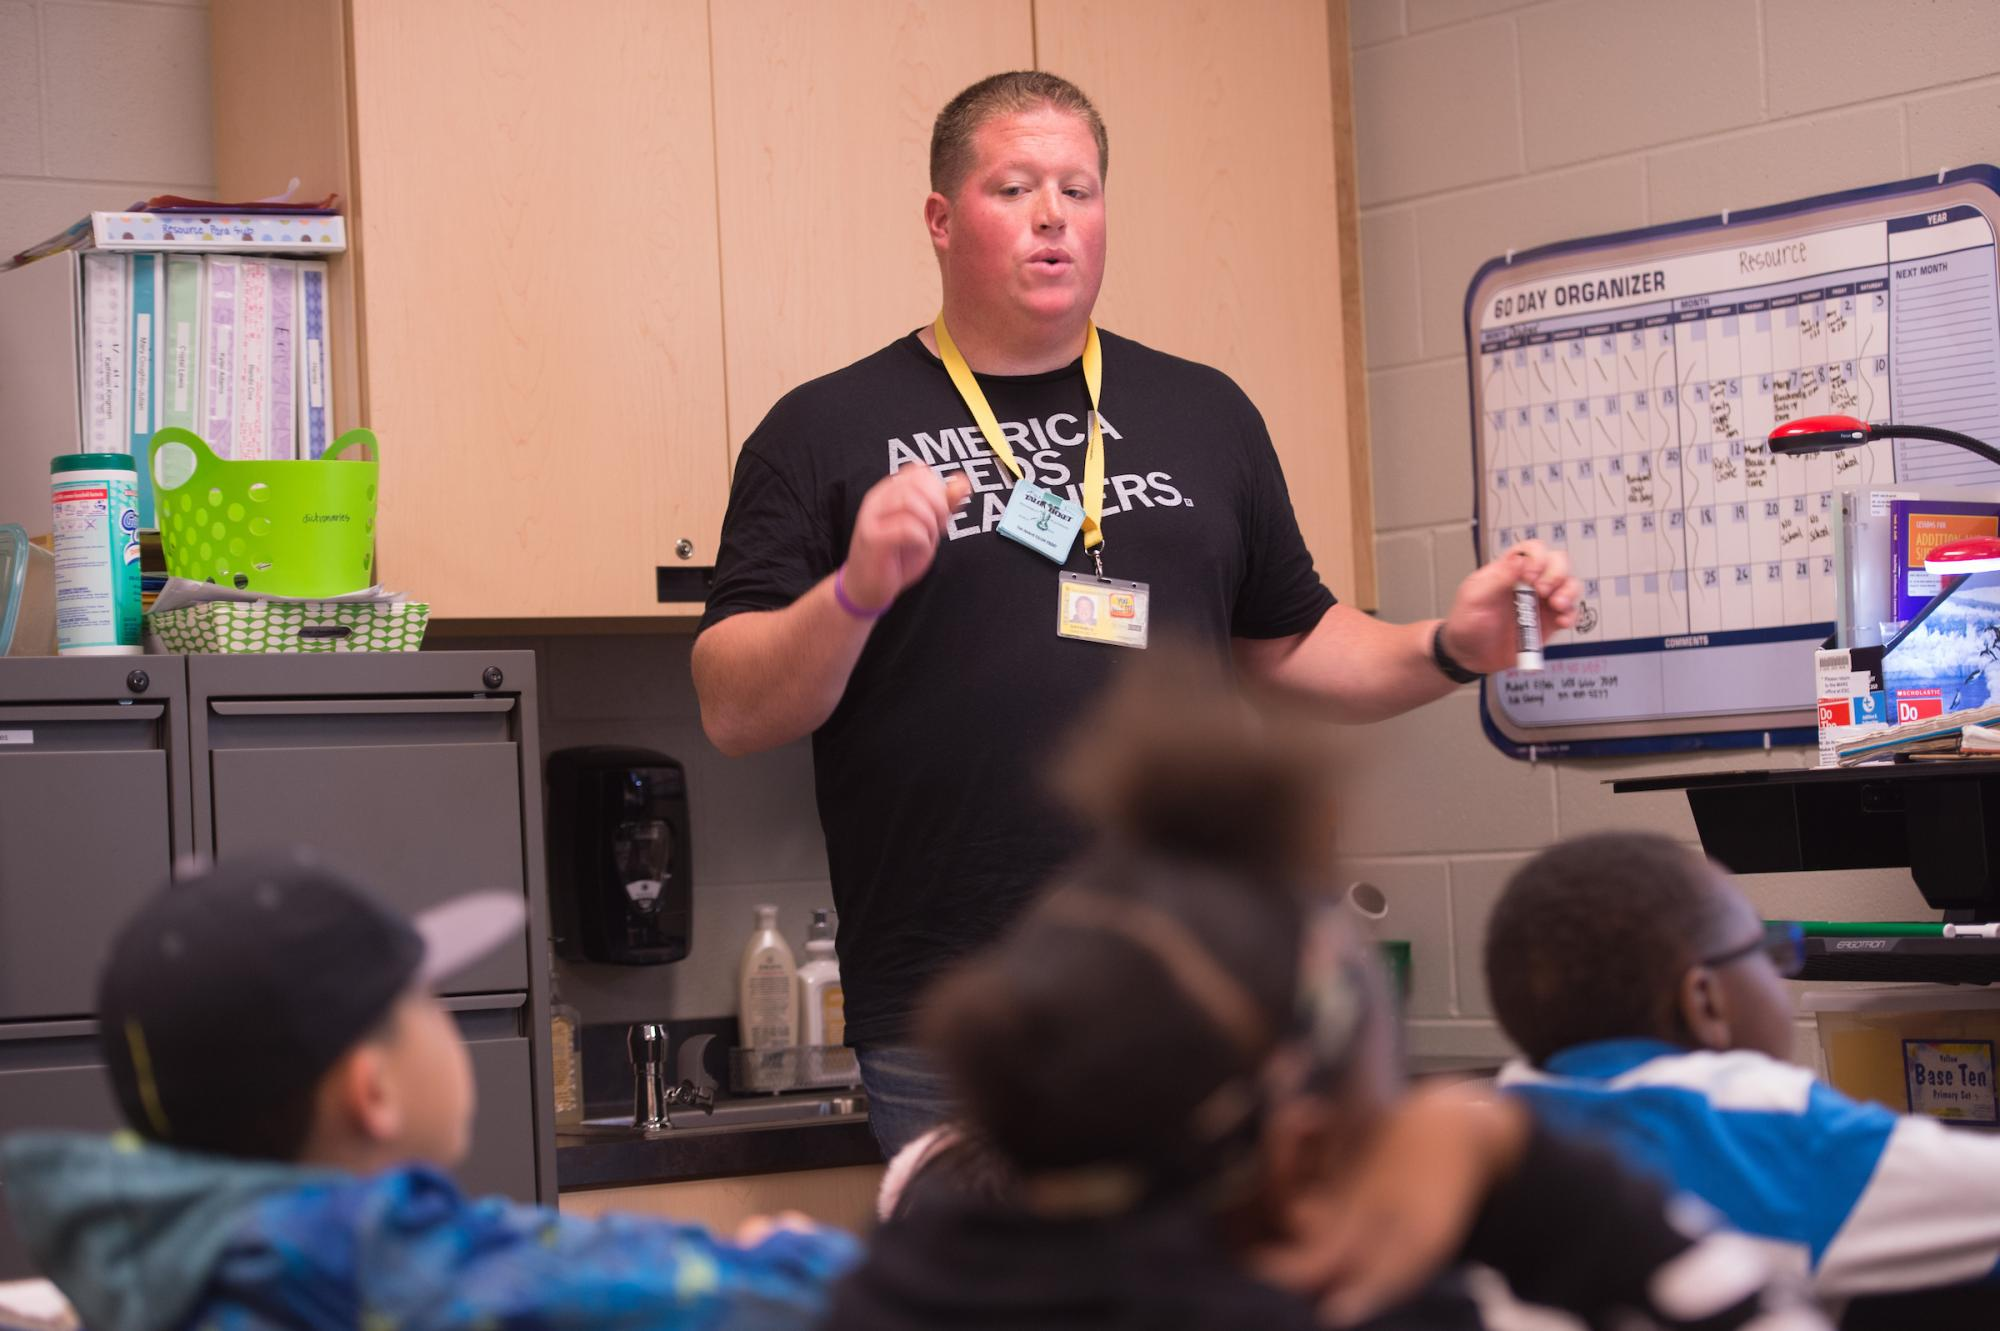 Student teacher Reid Kallberg works with students in a classroom.